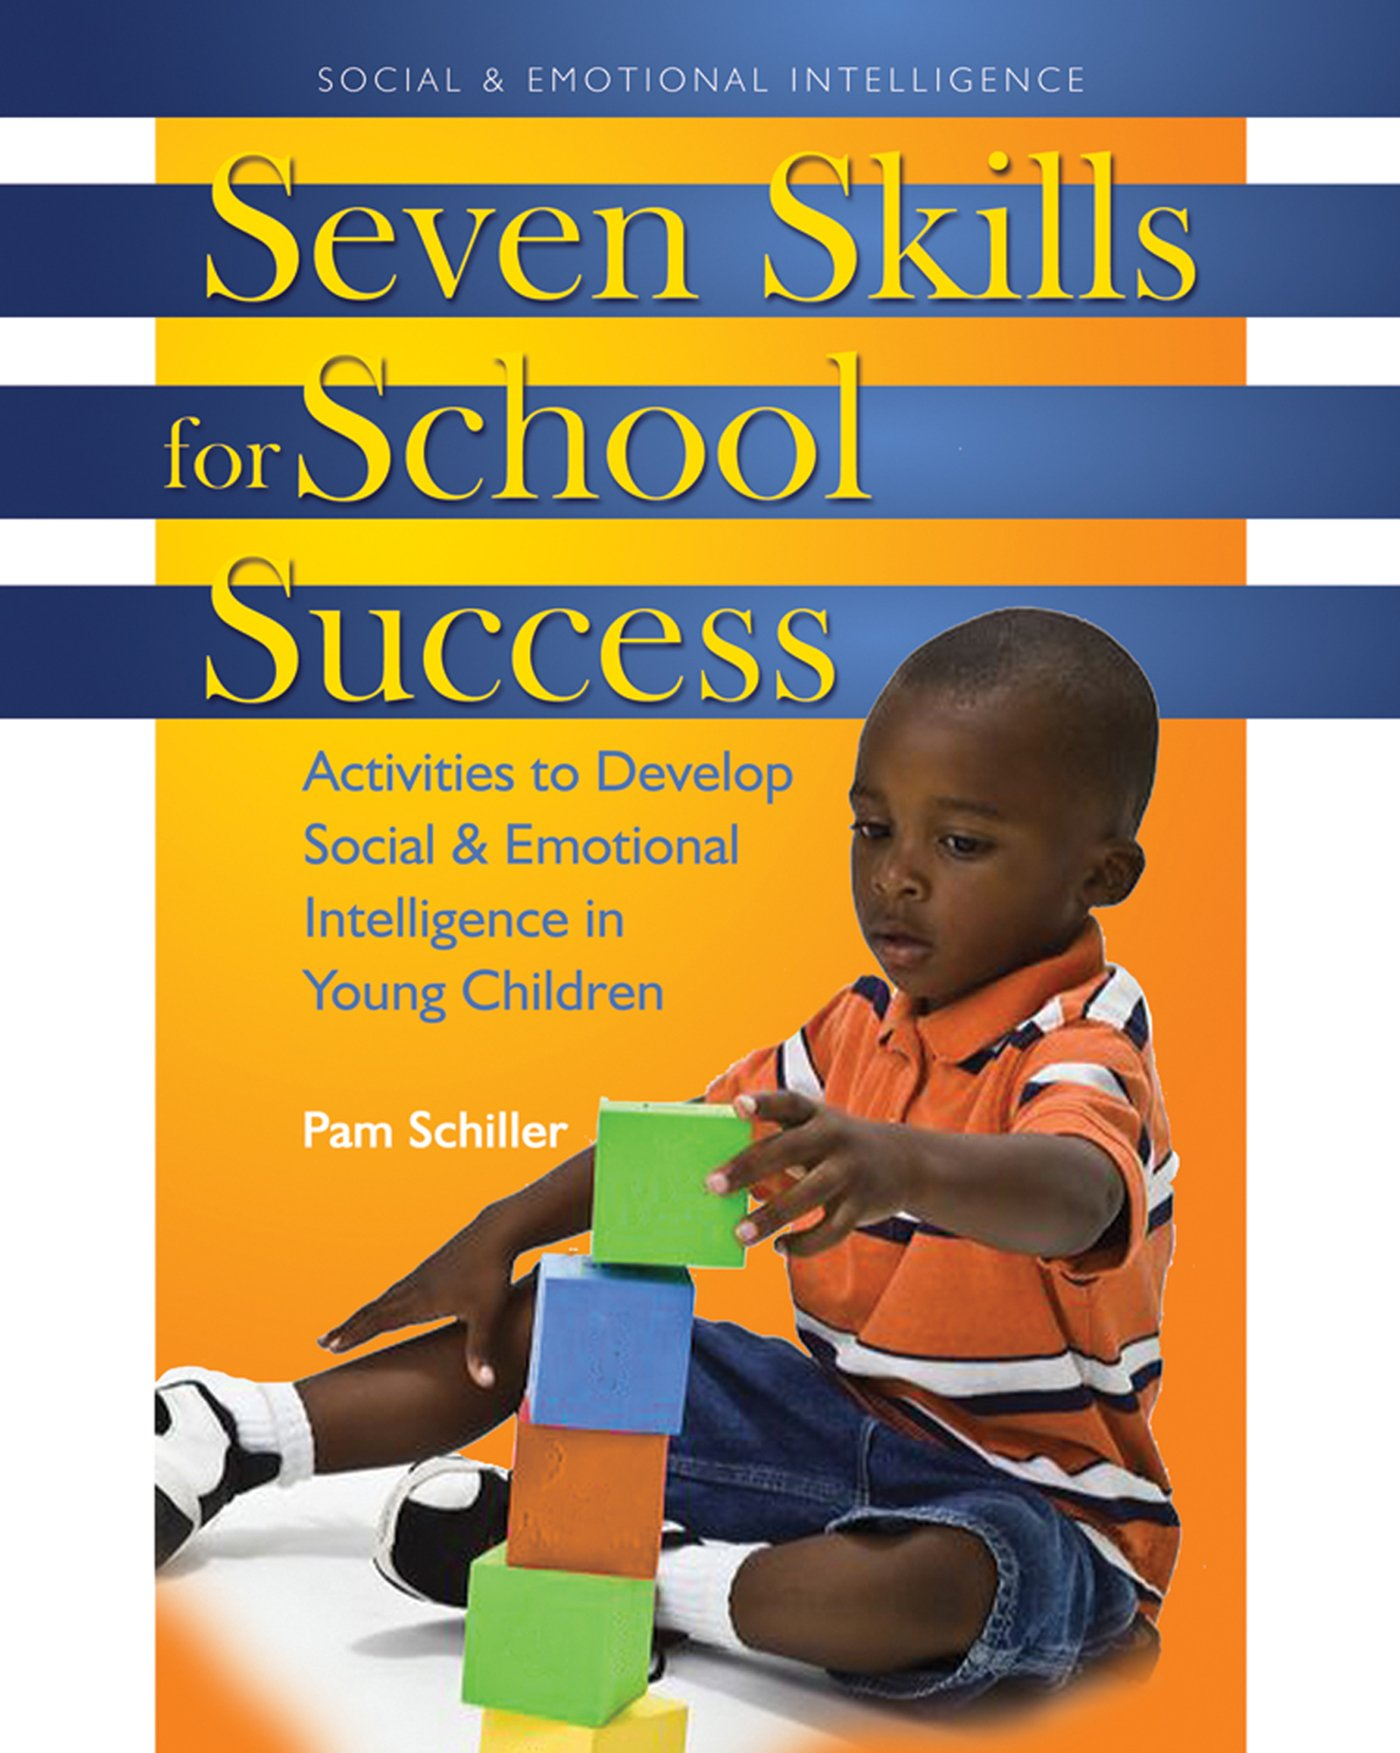 Download Seven Skills for School Success: Activities to Develop Social and Emotional Intelligence in Young Children PDF ePub fb2 ebook